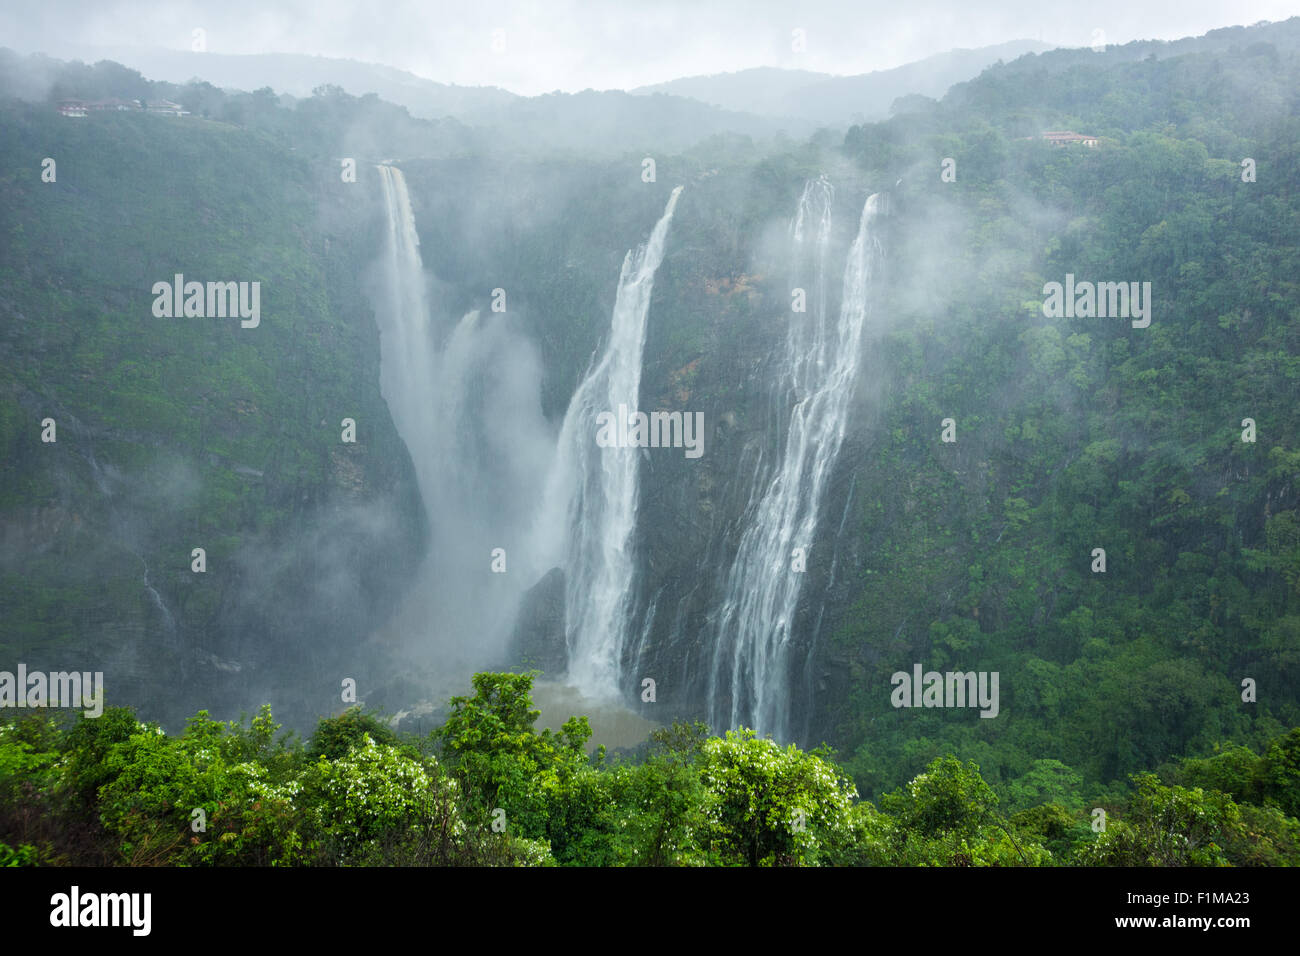 The beautiful and scenic Jog Falls created by the Sharavathi River on a foggy morning in monsoon season. - Stock Image